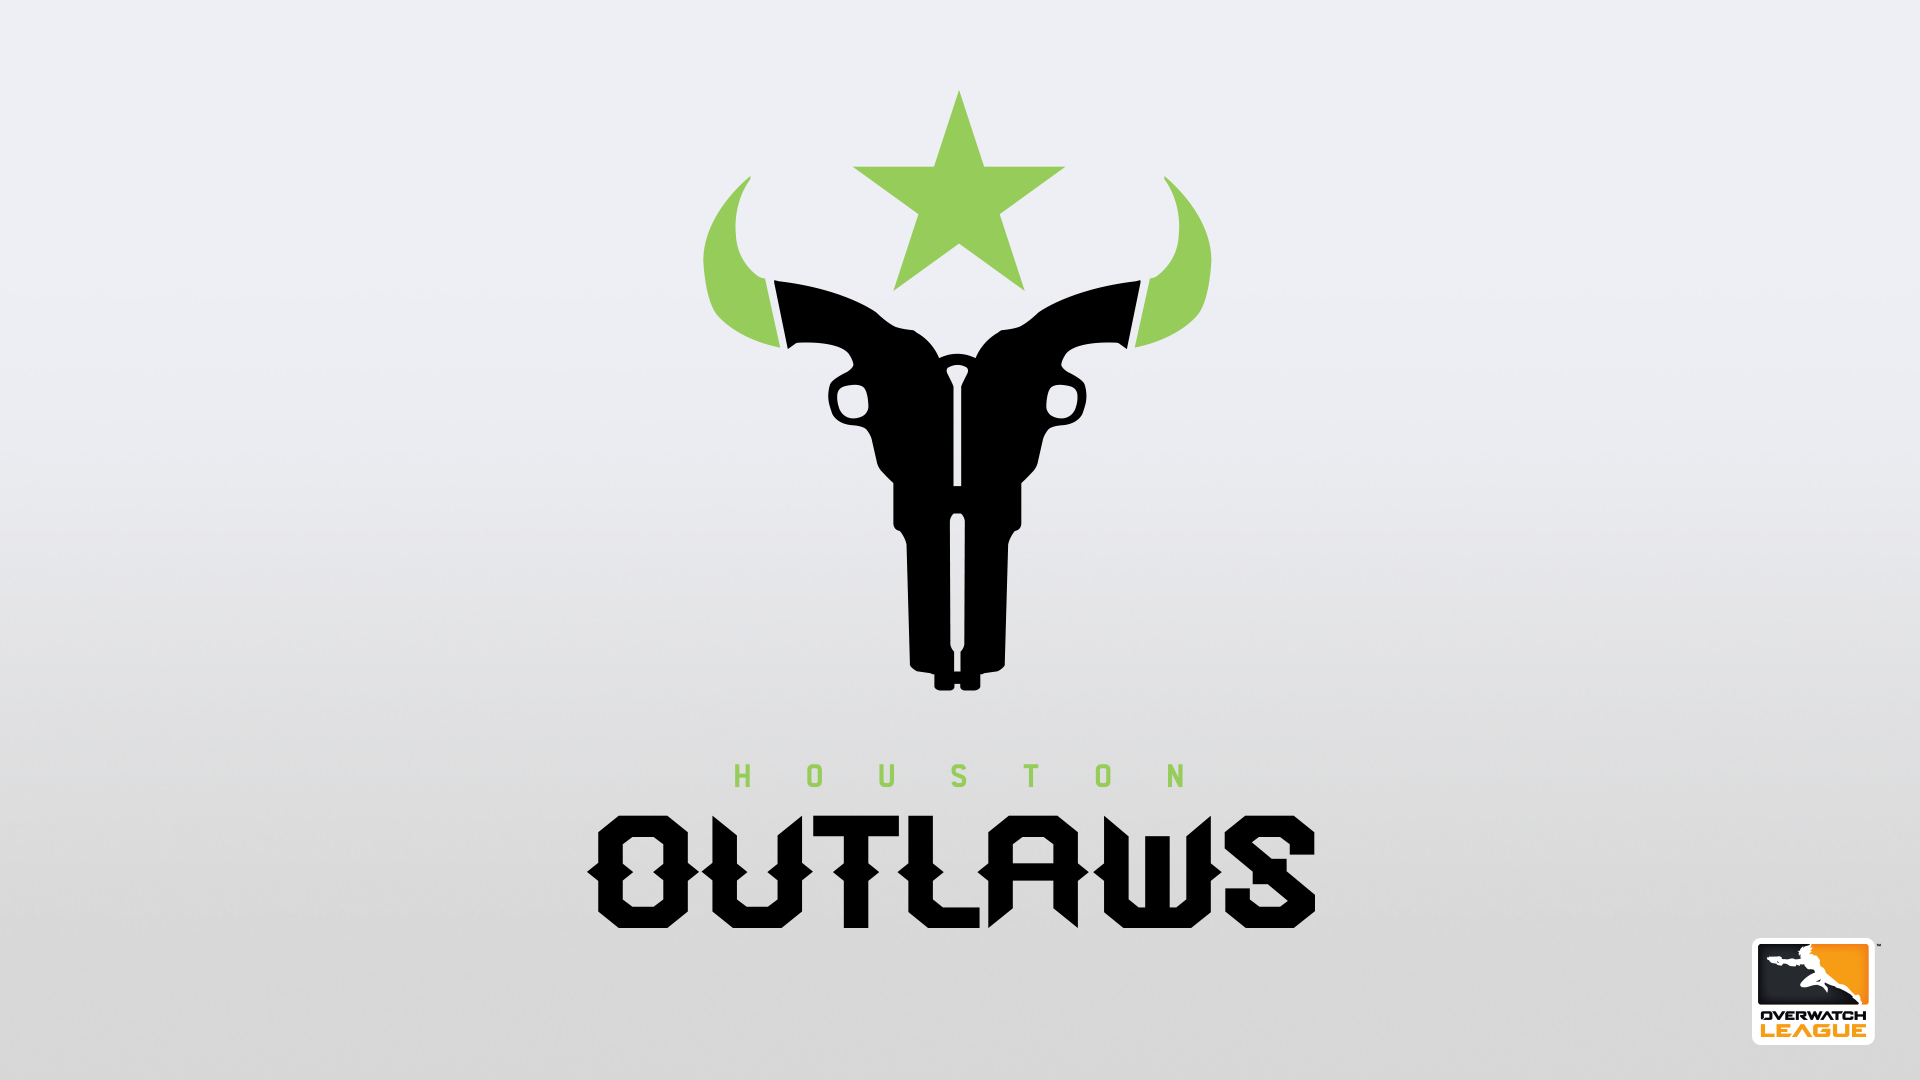 Houston Outlaws, all you need to know